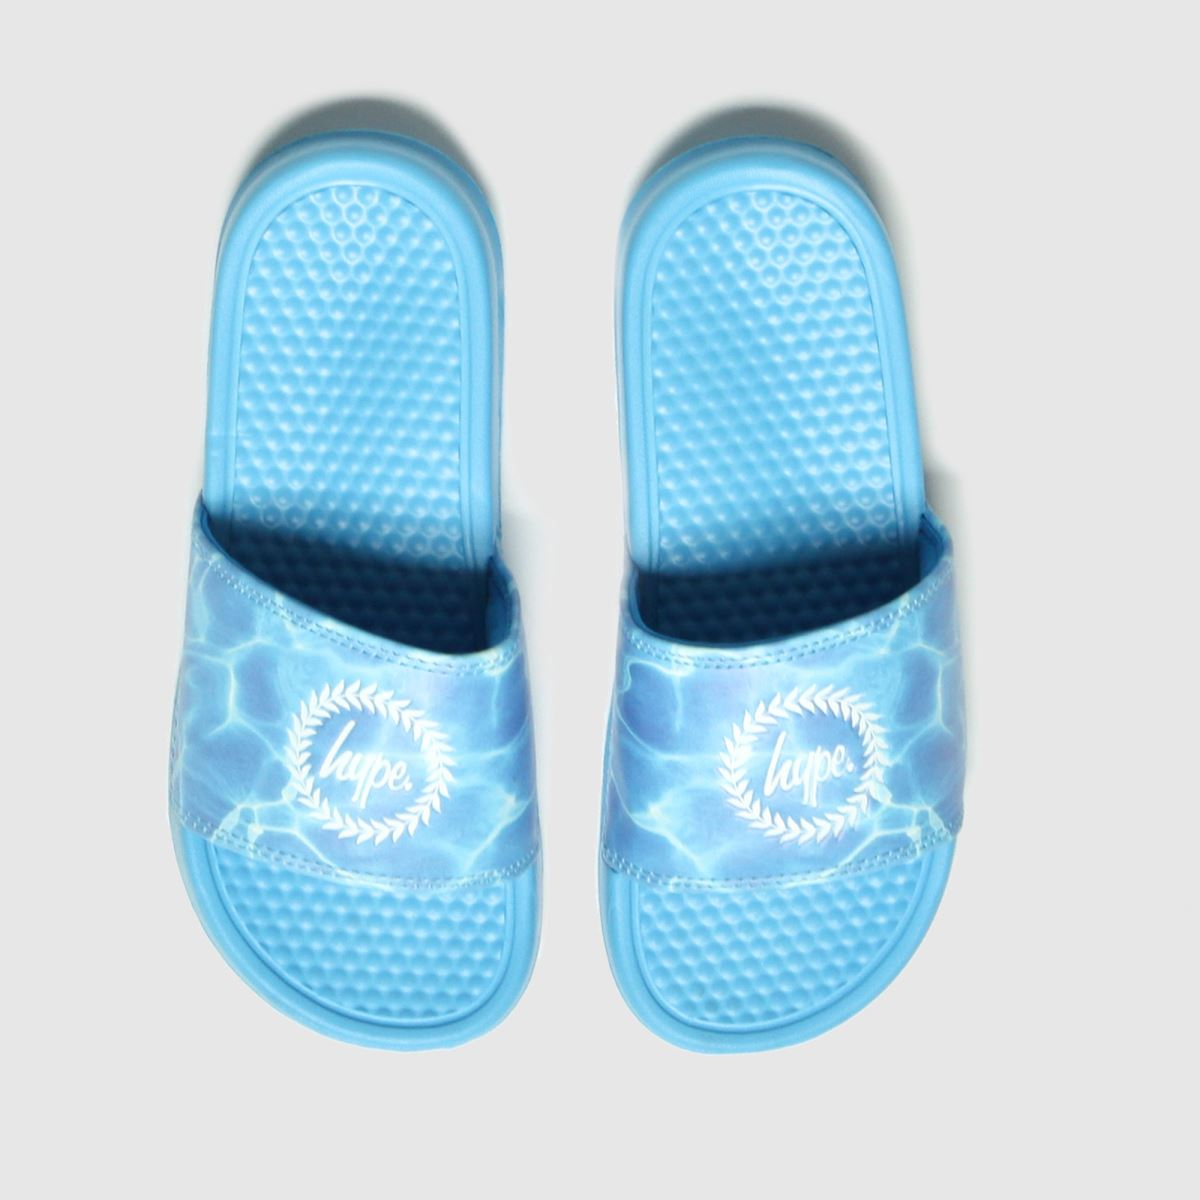 Hype Blue Pool Crest Slider Trainers Junior